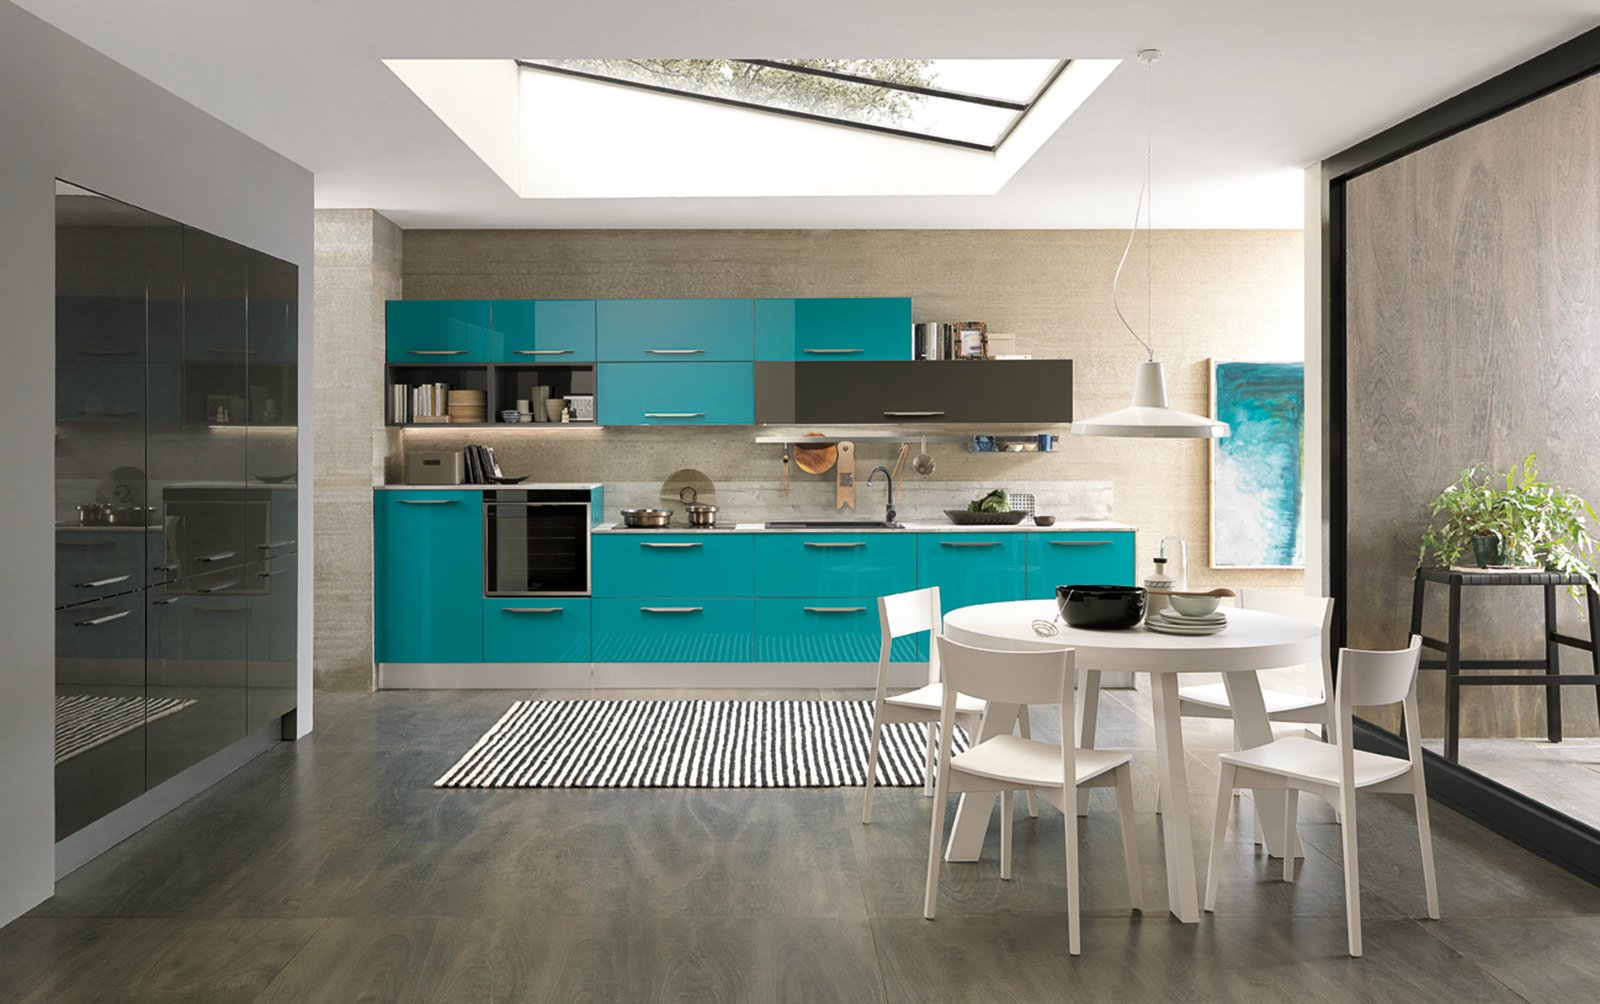 Cucine colorate. come un quadro contemporaneo cose di casa